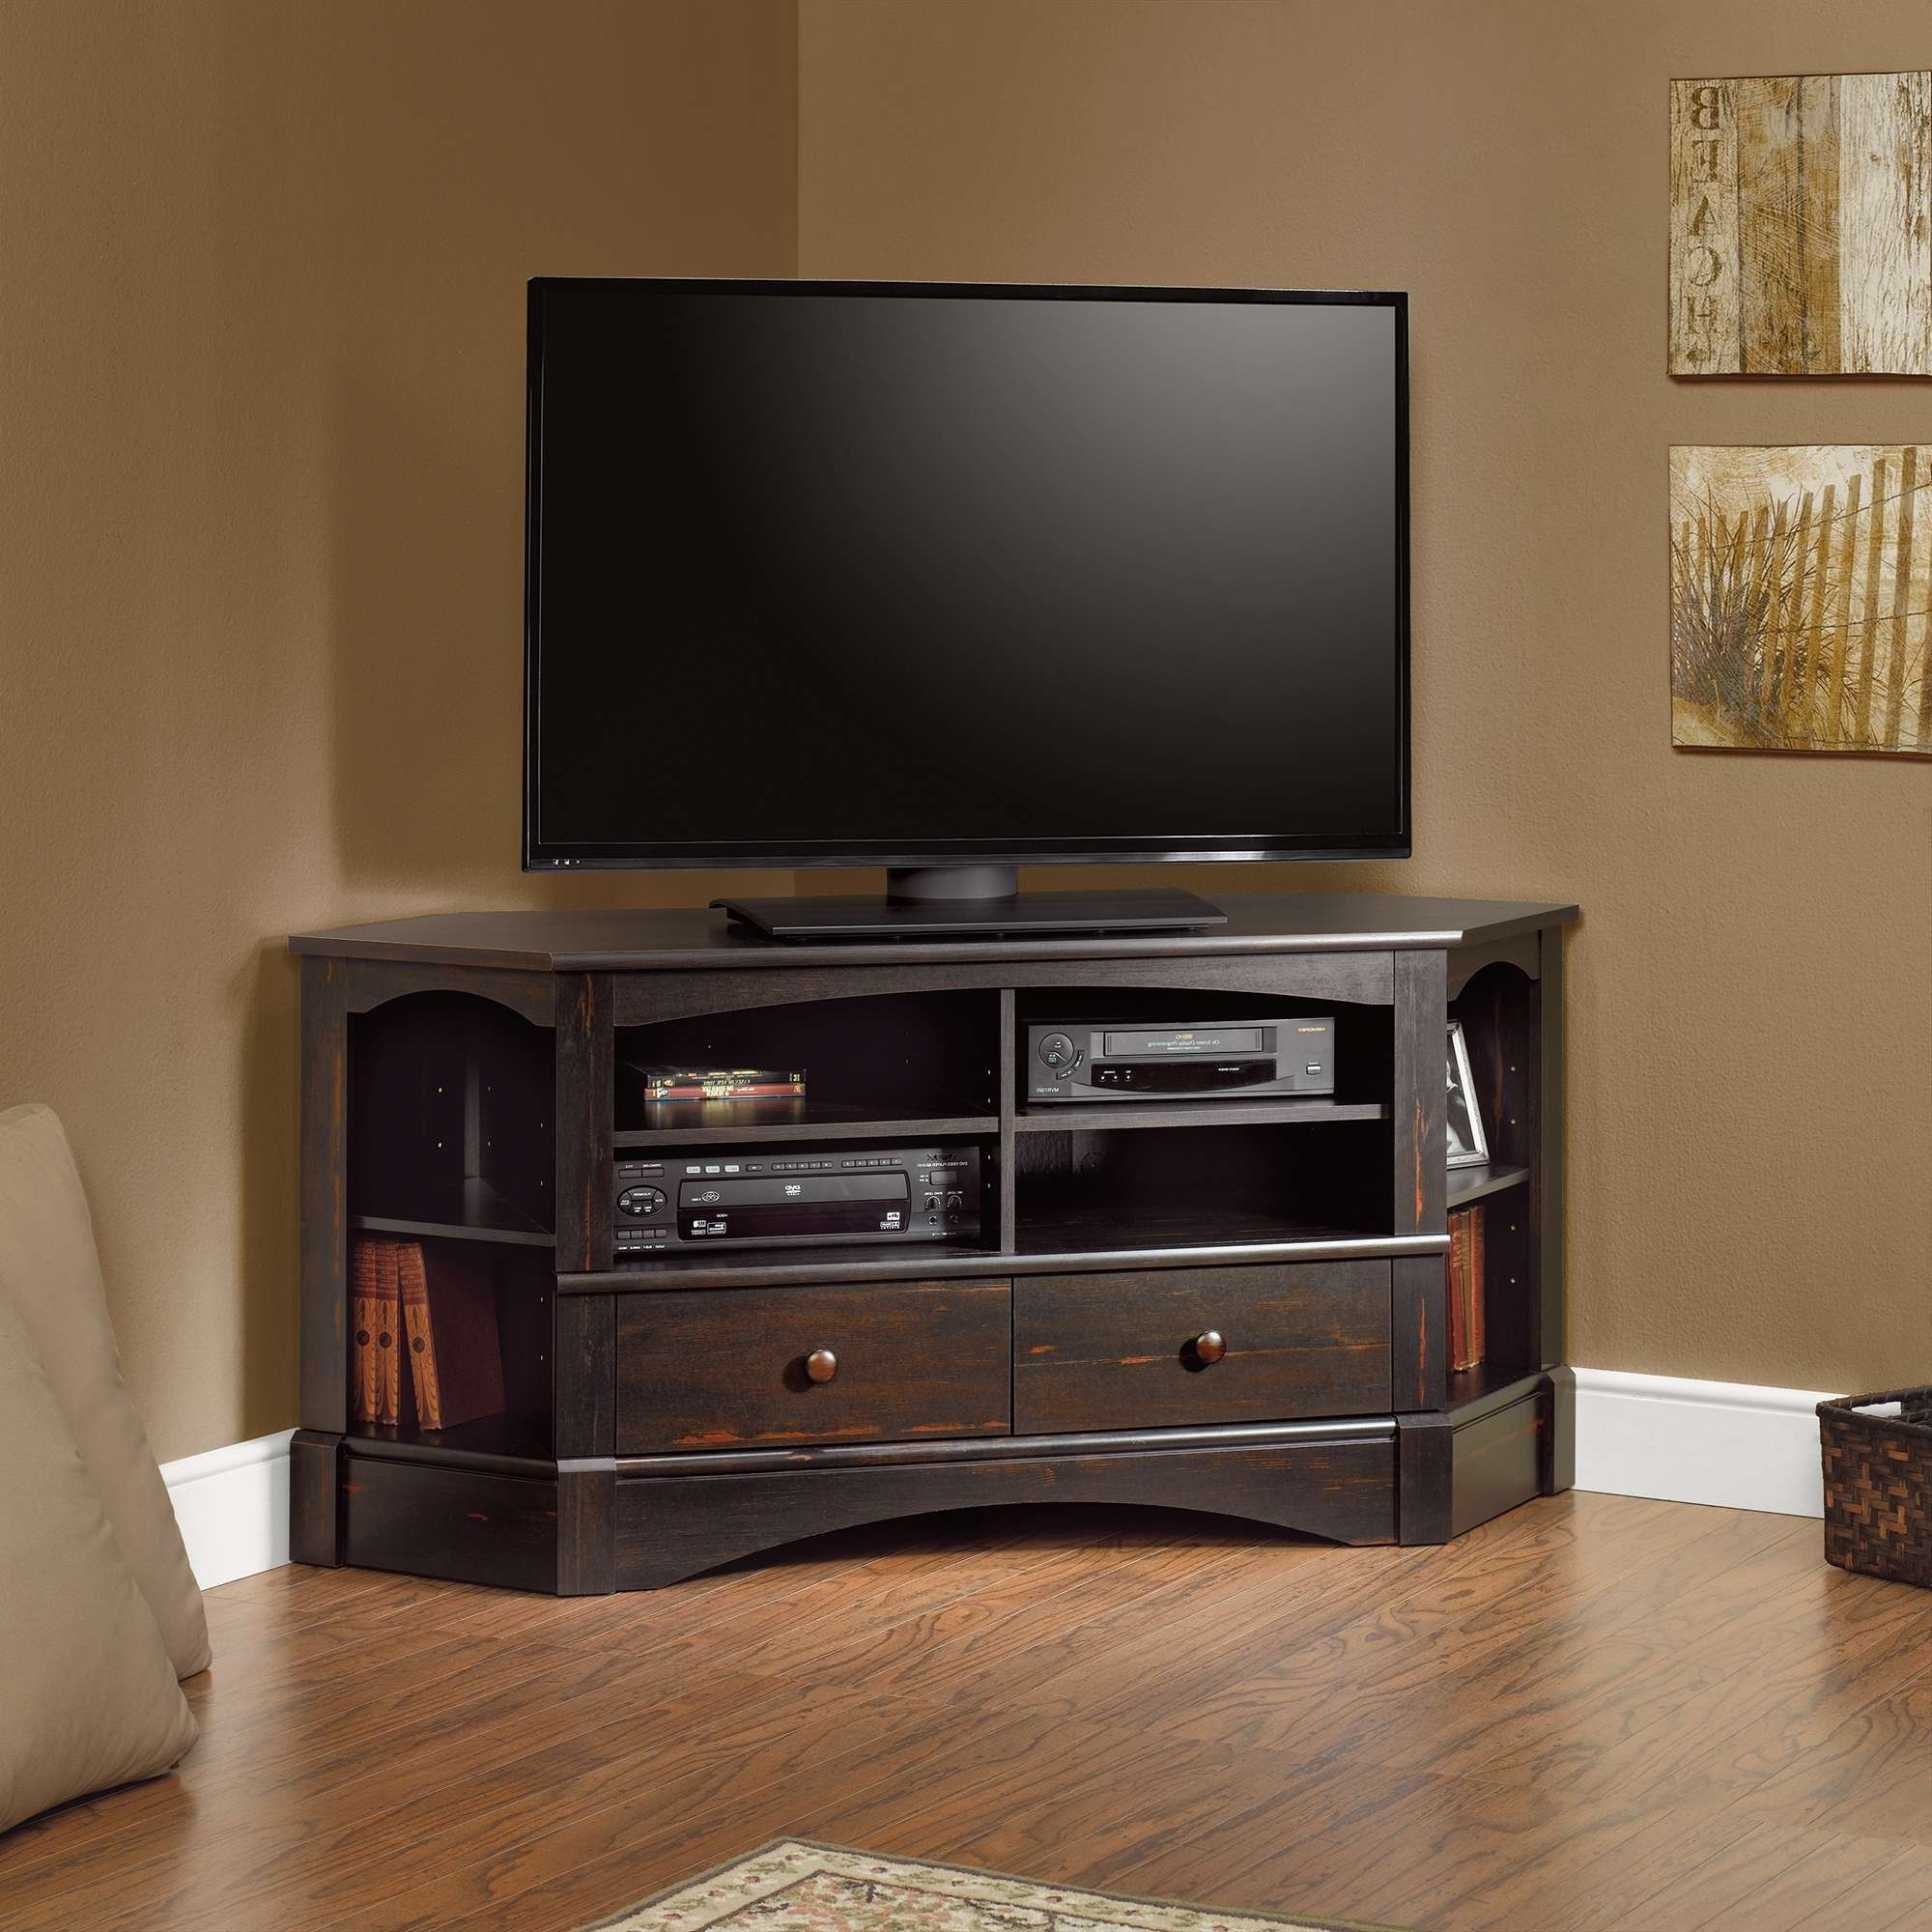 Harbor View | Corner Entertainment Credenza | 402902 | Sauder Throughout Corner Tv Cabinets With Hutch (View 12 of 20)